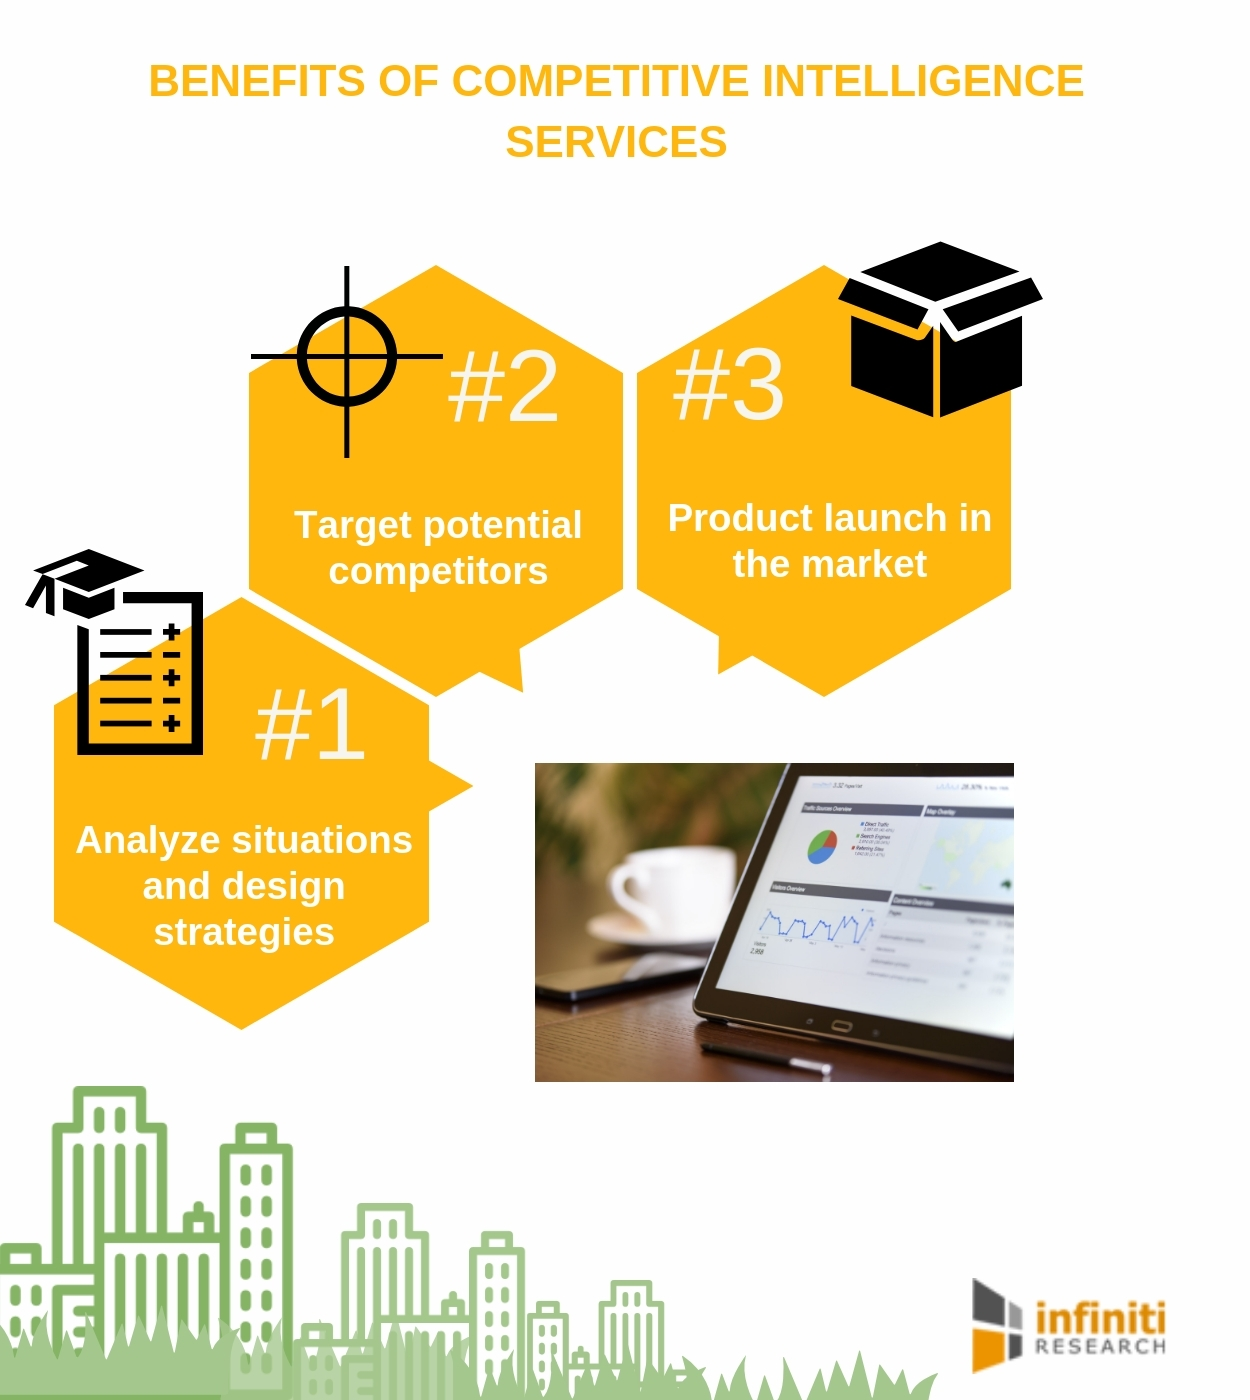 infiniti research unveils the benefits of competitive intelligence